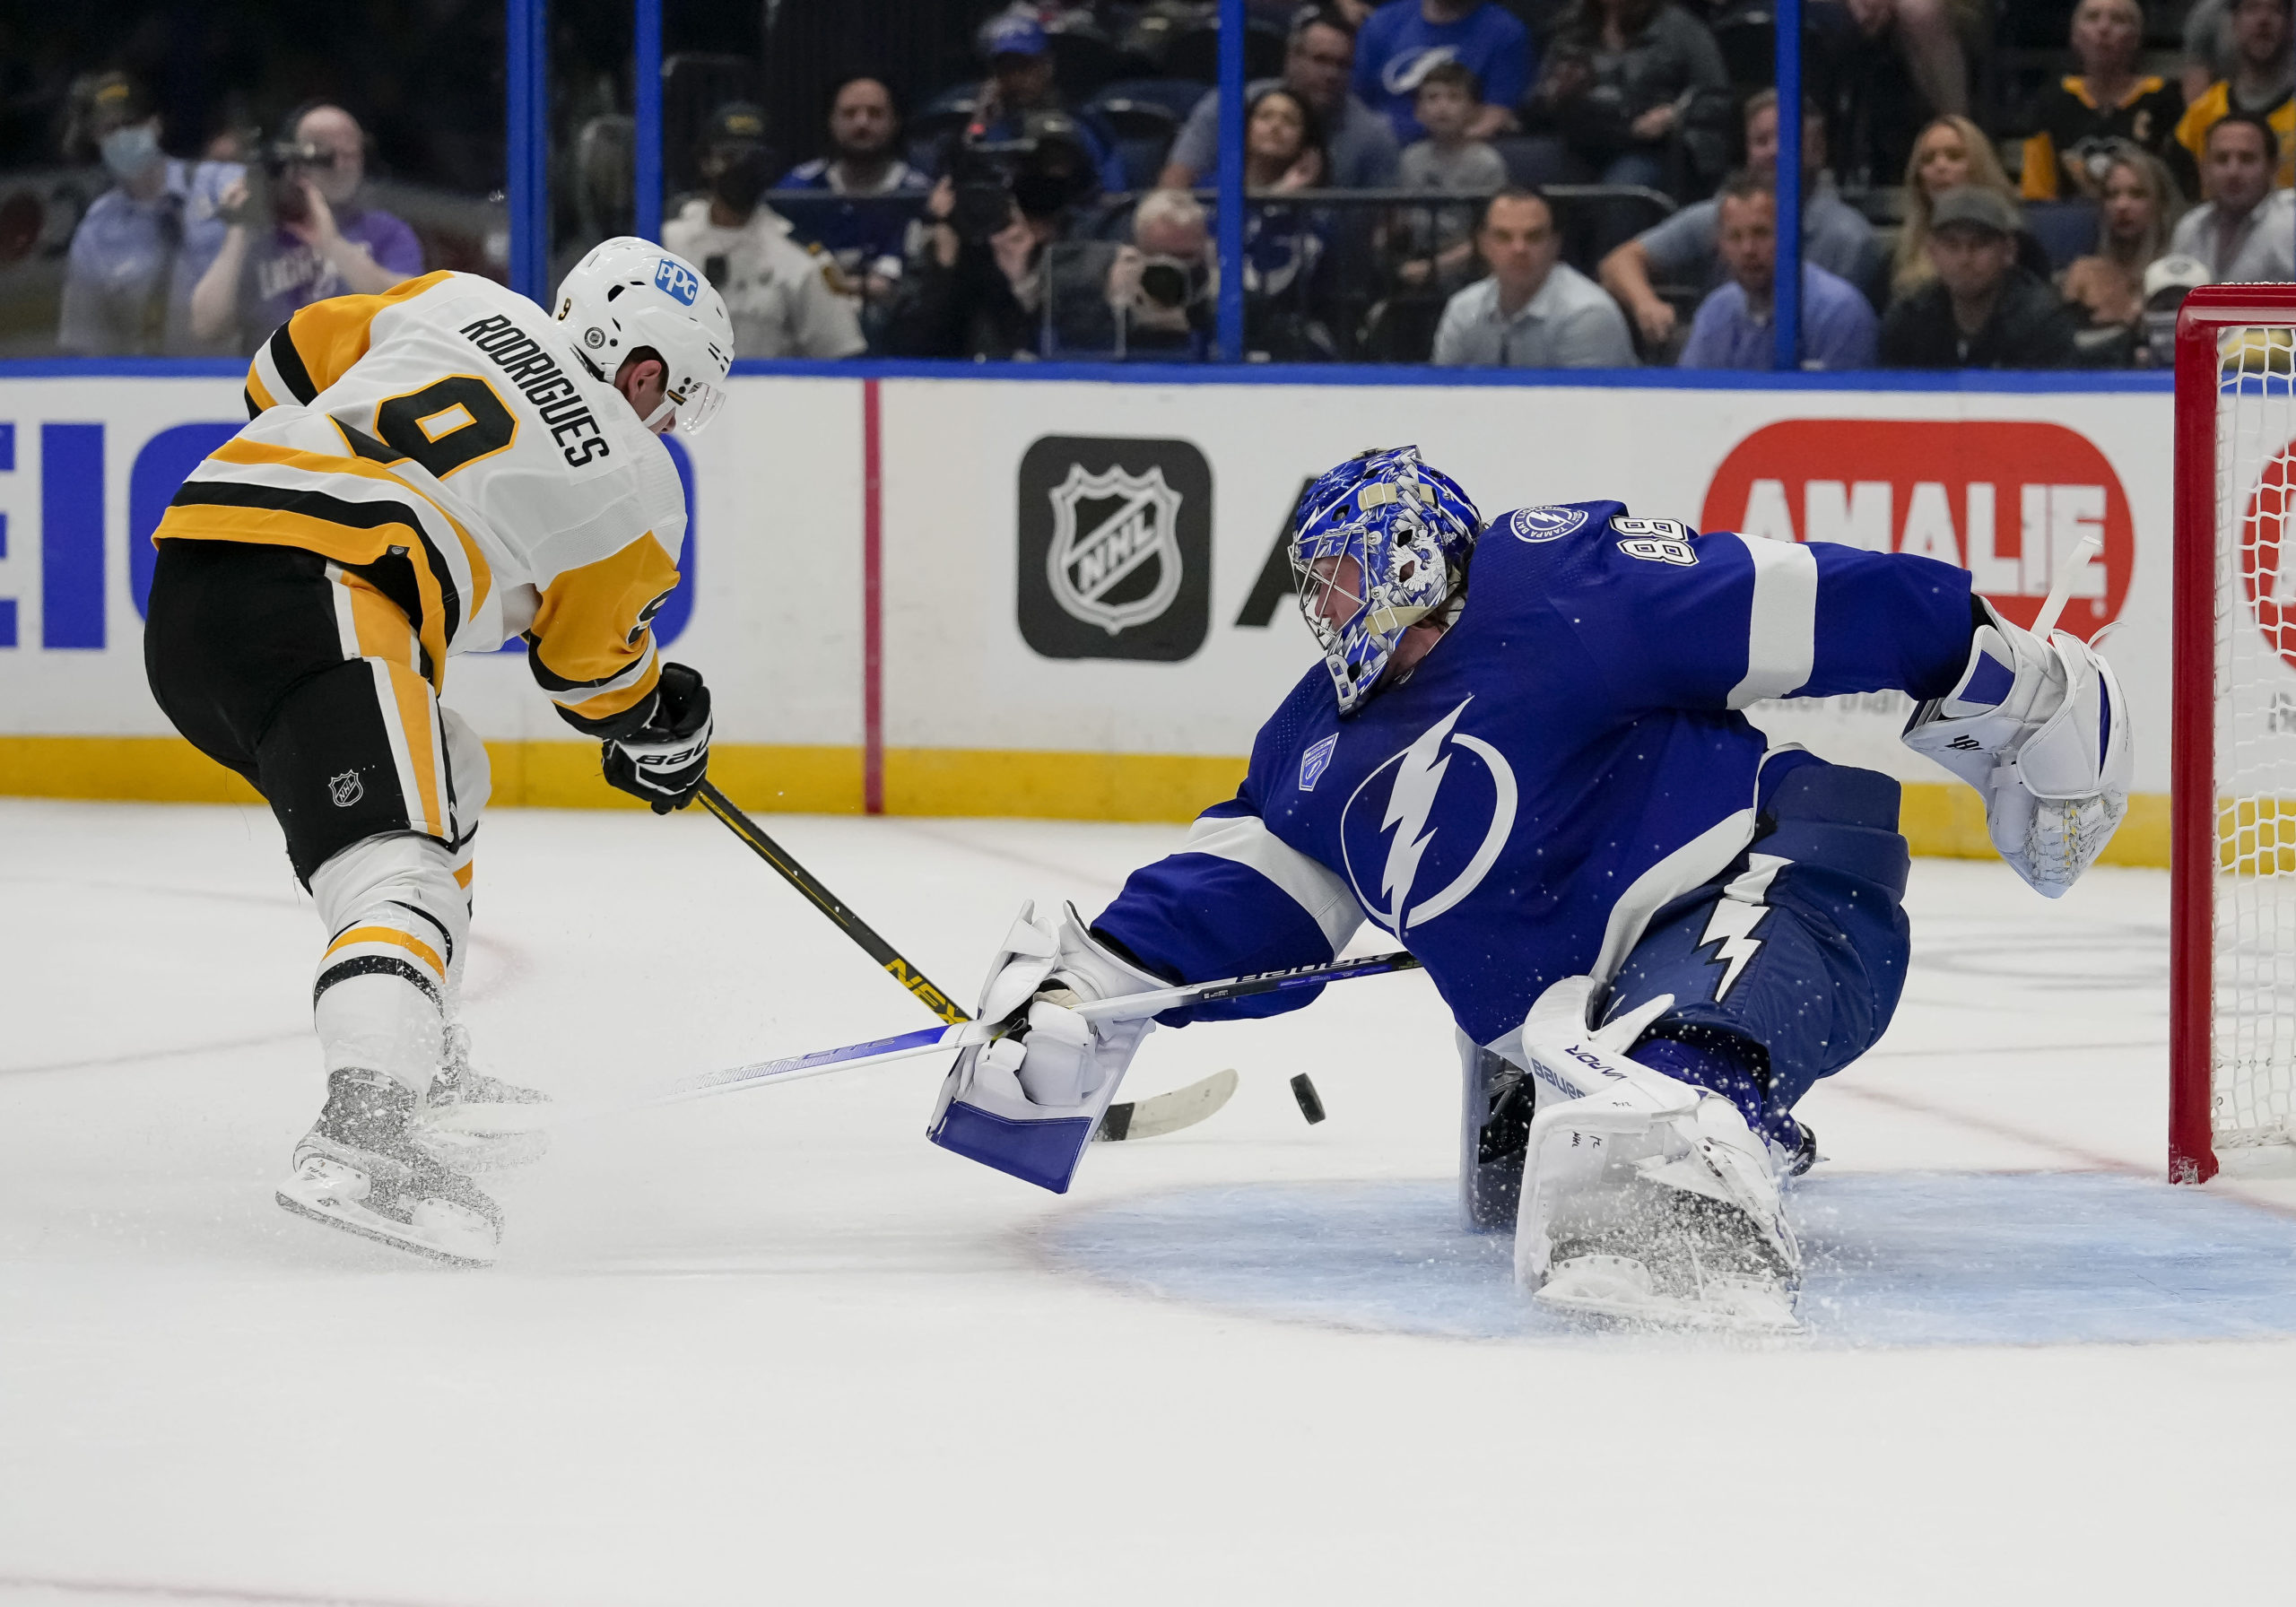 NHL started its $1 billion deal with ESPN and Turner Sports – here's how many people watched the season openers